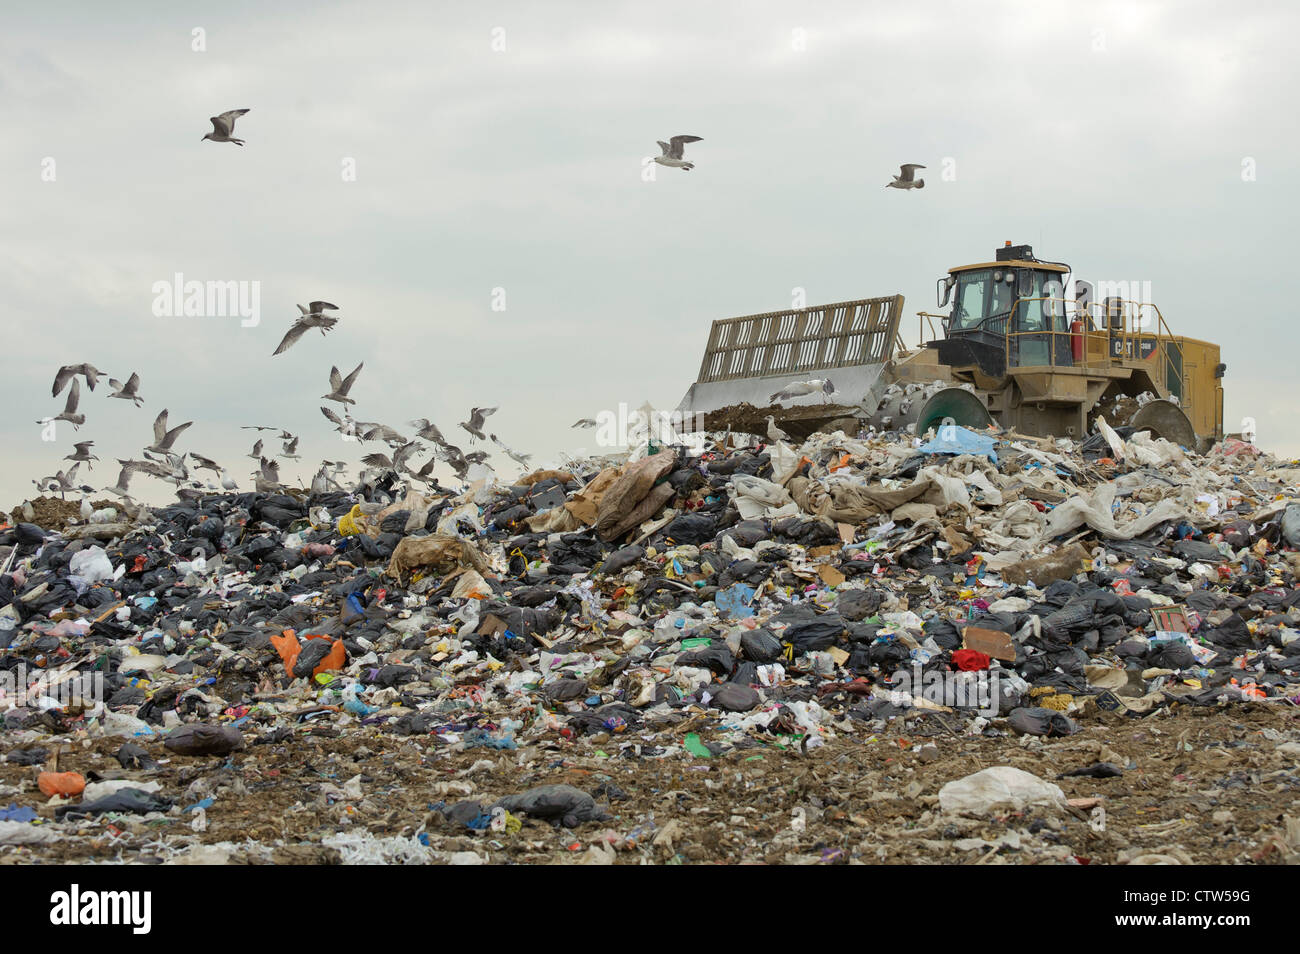 Gulls scavenging at Pitsea landfill site in Essex. August 2011. - Stock Image